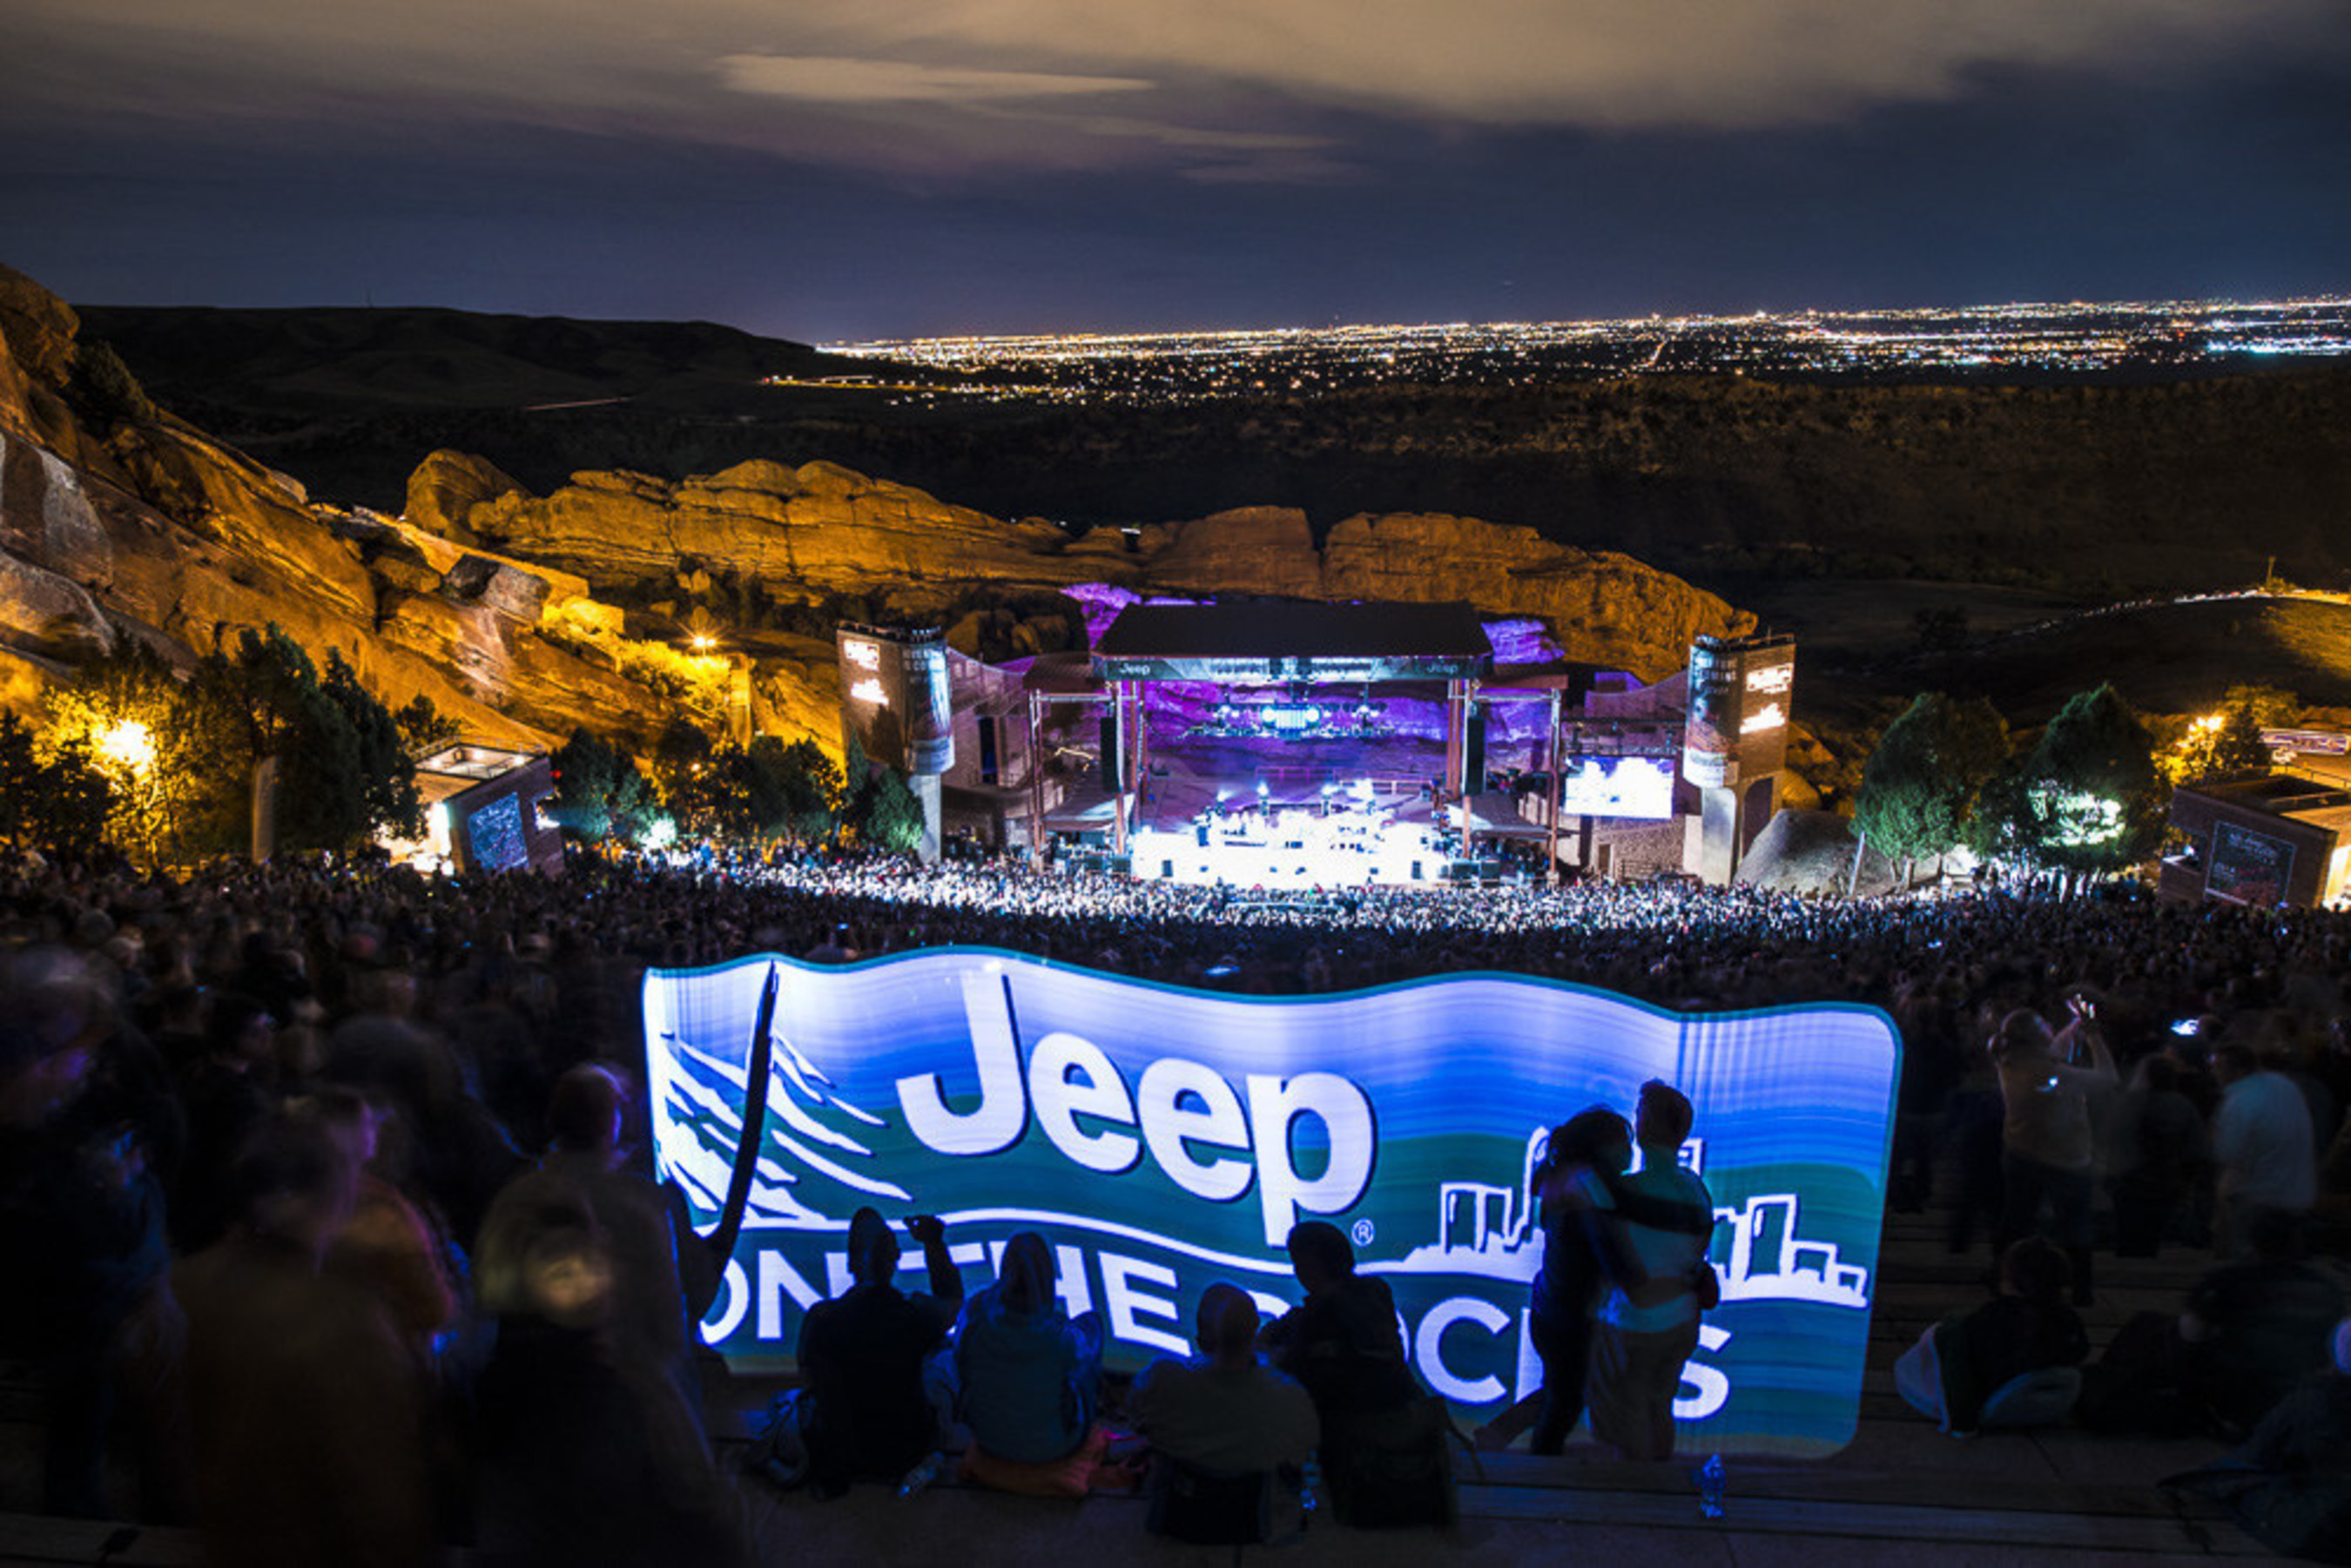 Panic! At the Disco to Headline Jeep' on the Rocks Presented by iHeartRadio Denver, Wrapping Up the Jeep Summer Concert Series at Red Rocks Amphitheatre